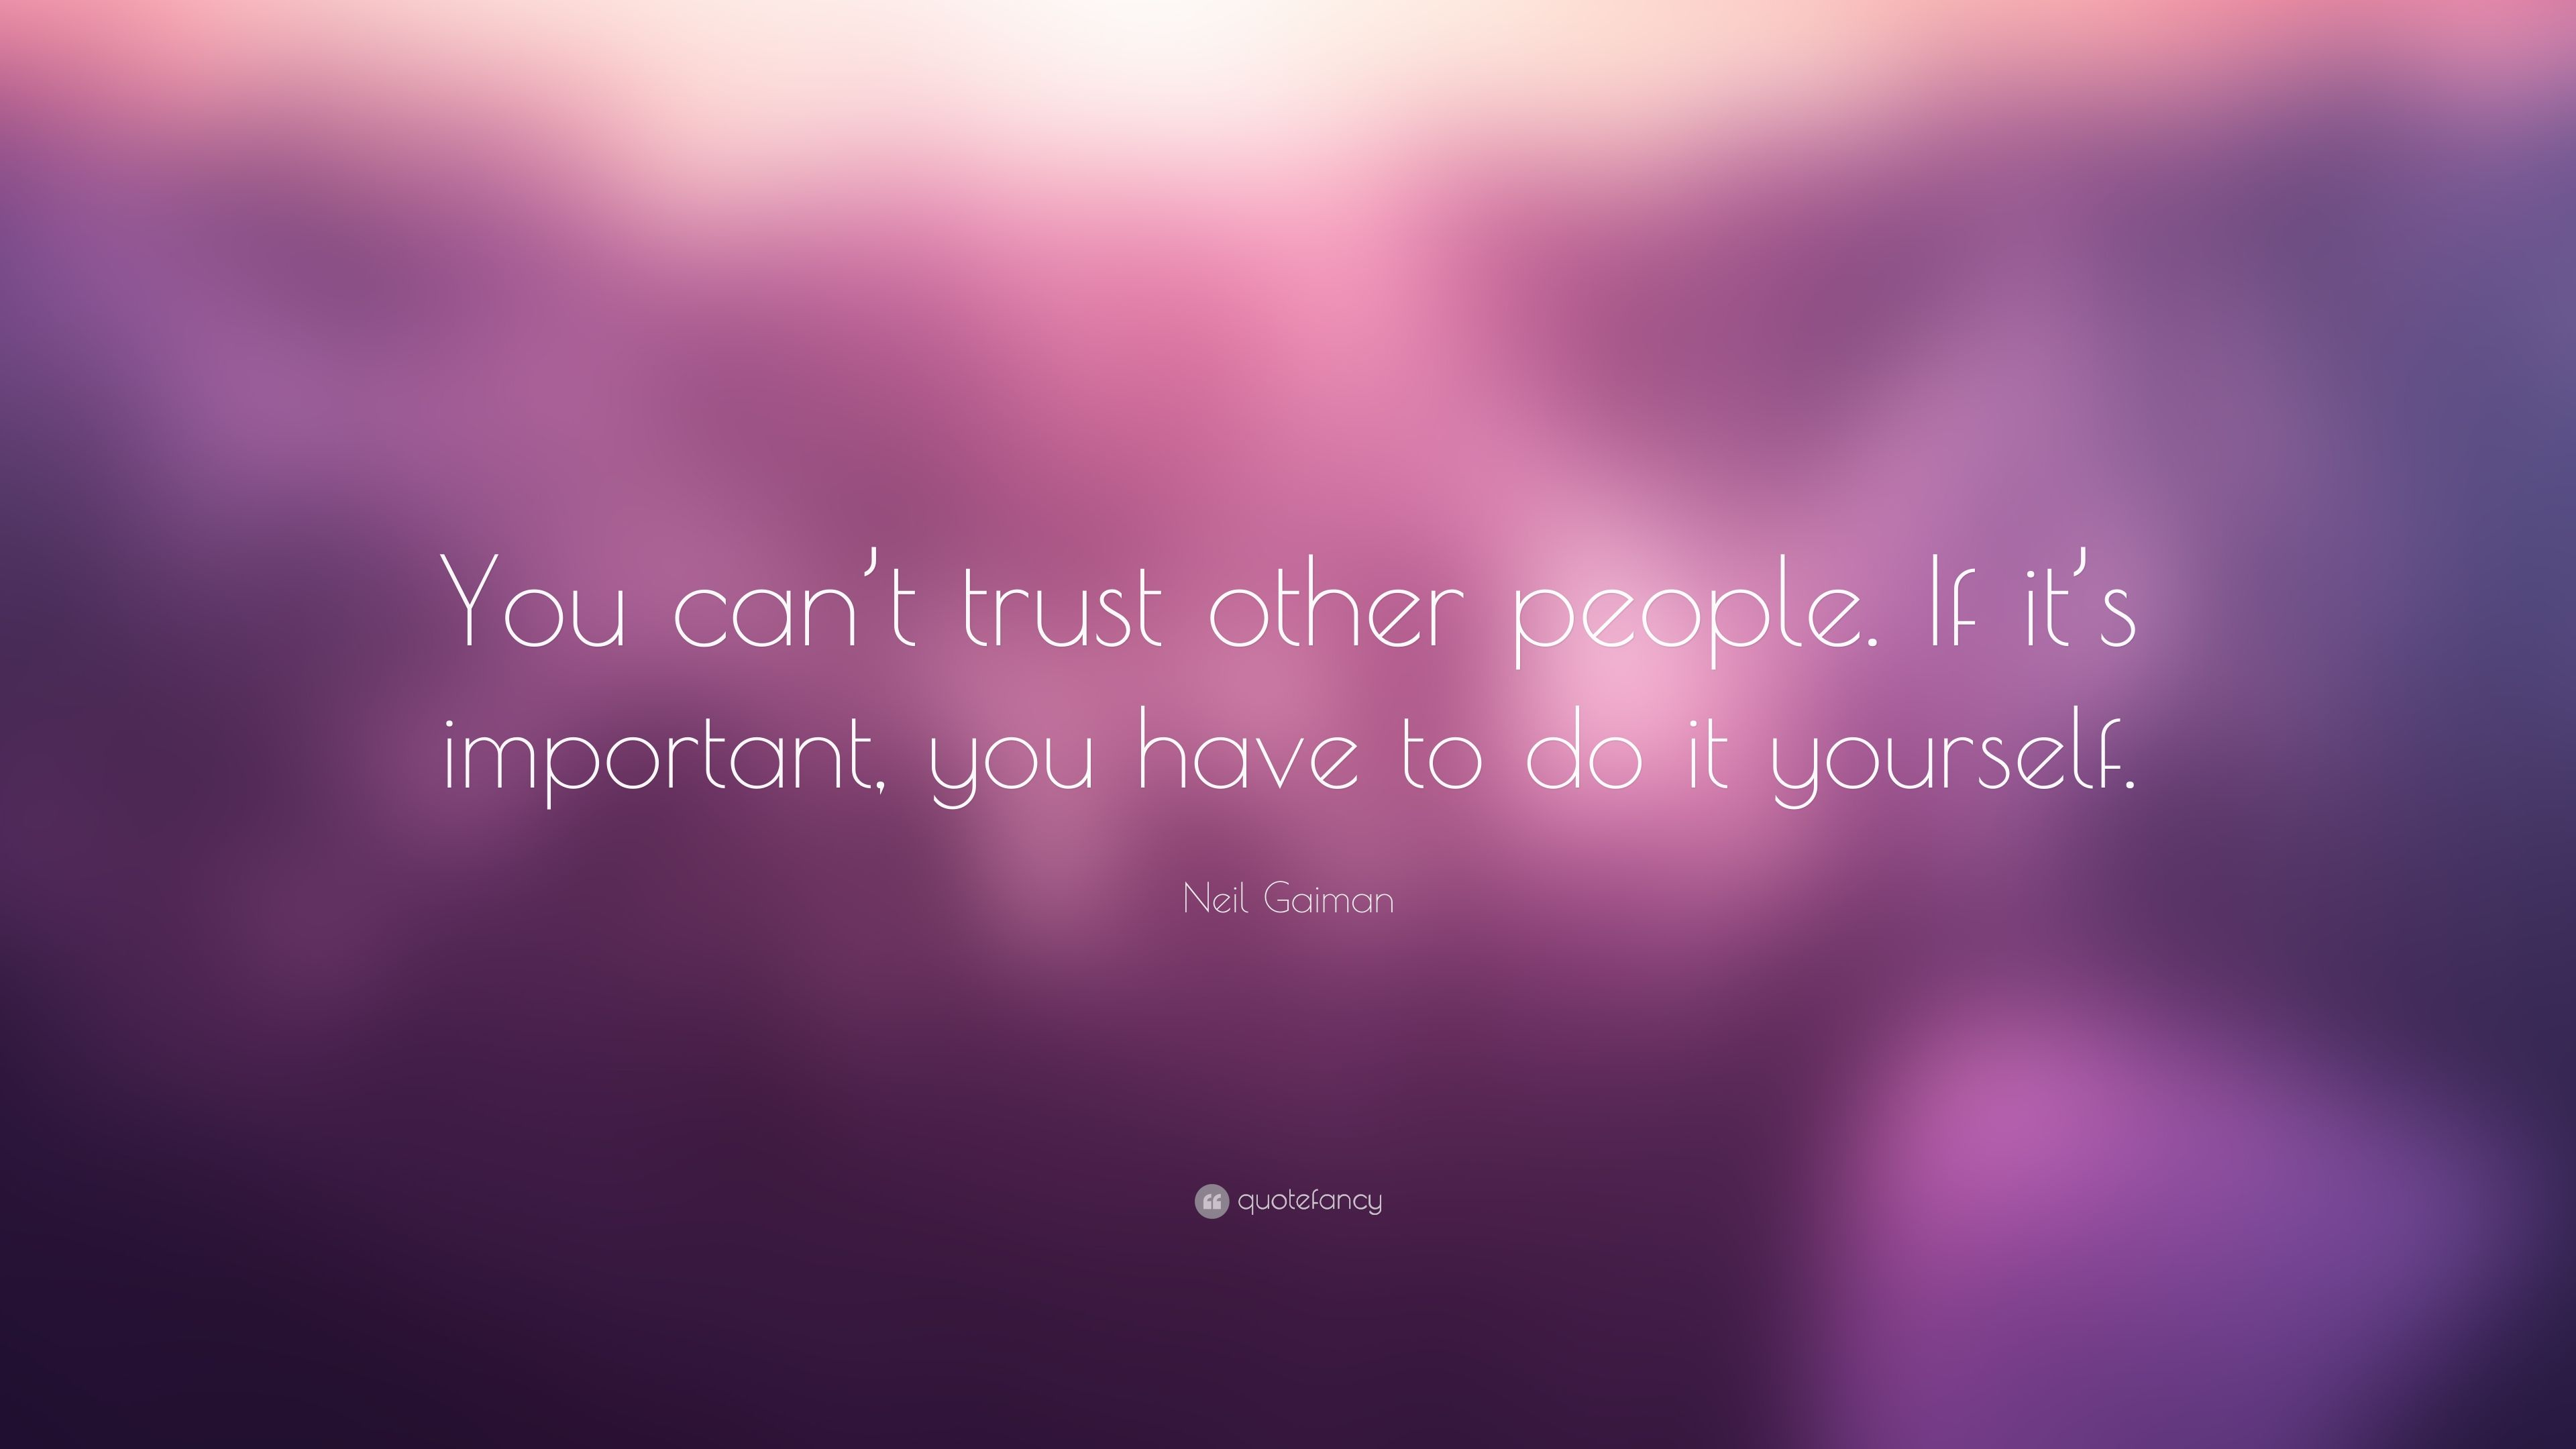 Neil gaiman quote you cant trust other people if its important neil gaiman quote you cant trust other people if its important solutioingenieria Images